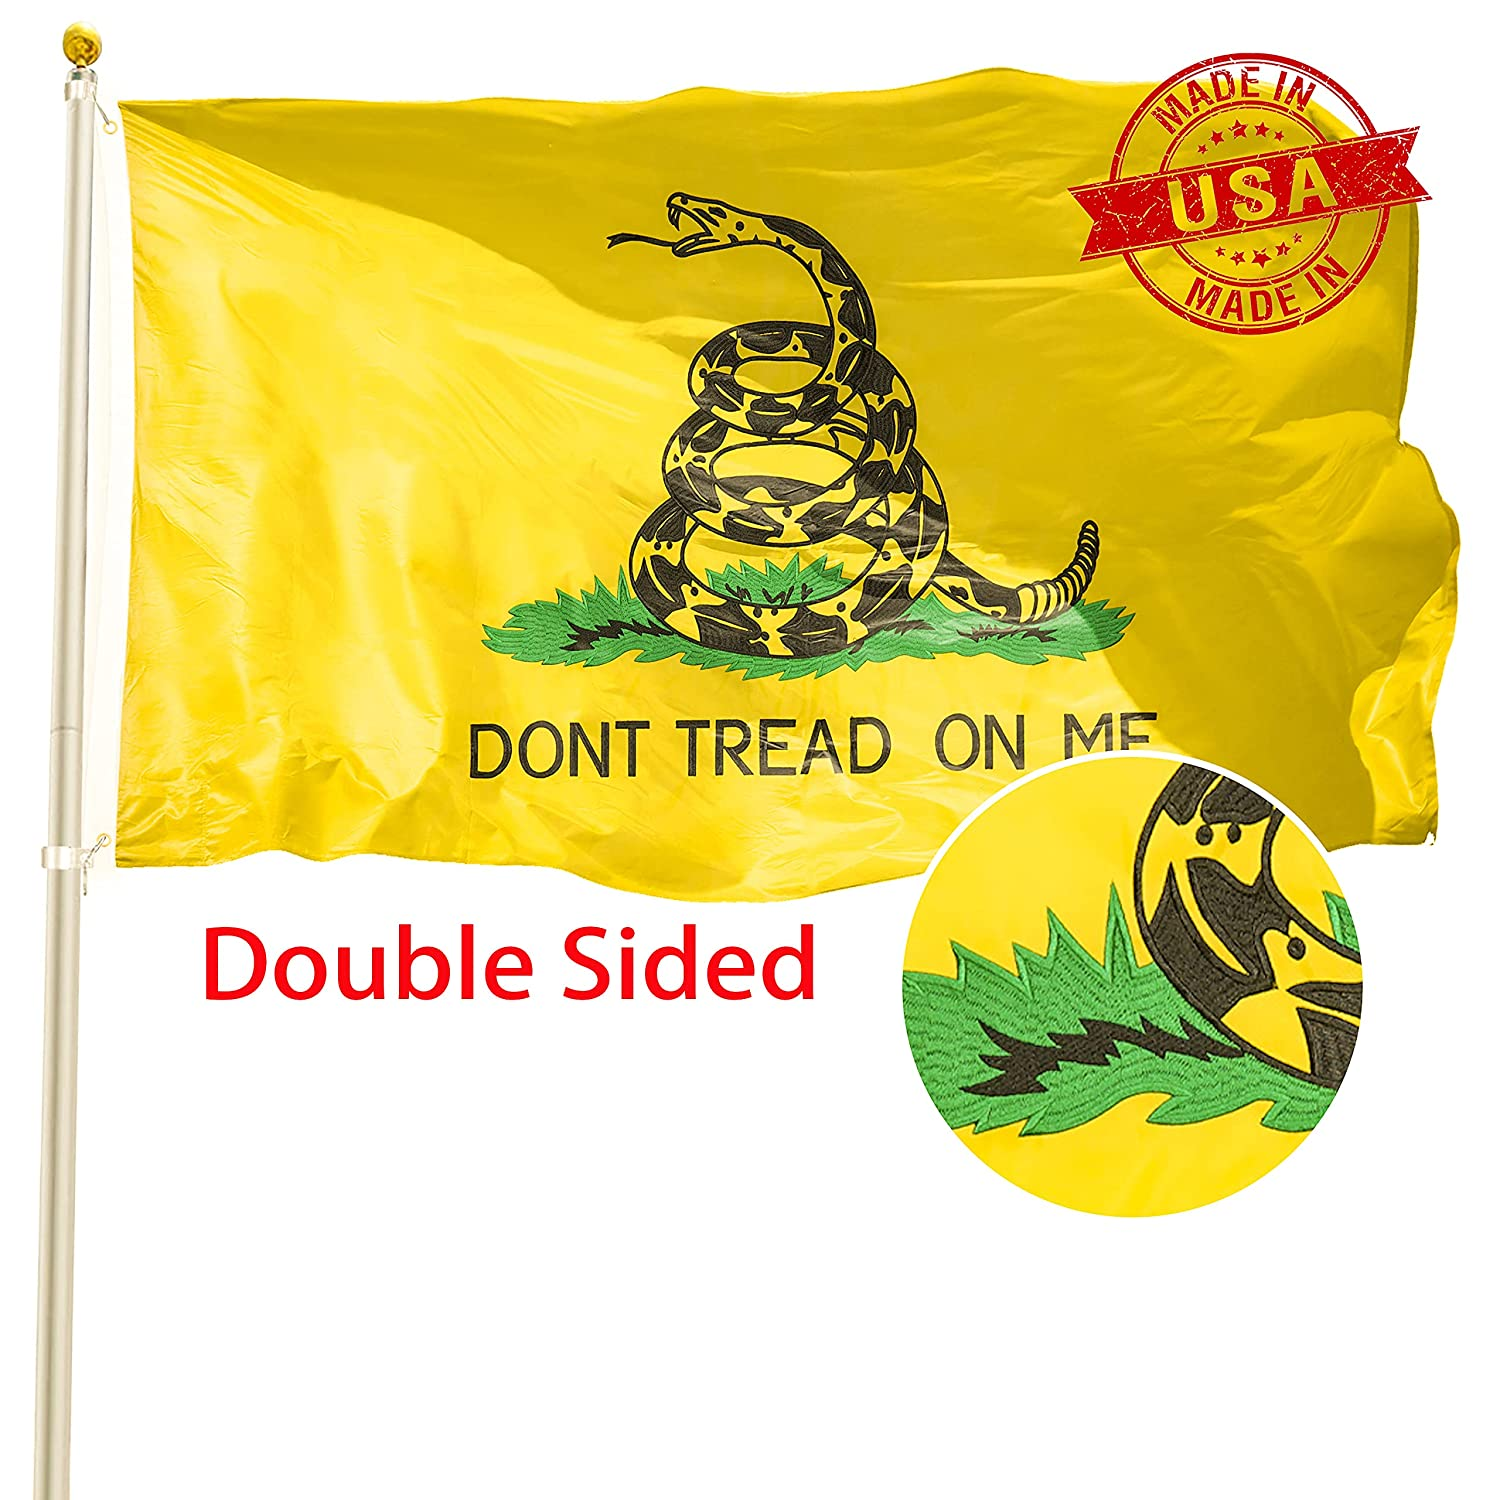 TOAUOT Double Sided 3x5ft Gadsden Dont Max 84% OFF on Flag Tread - Me Free shipping anywhere in the nation Embroi